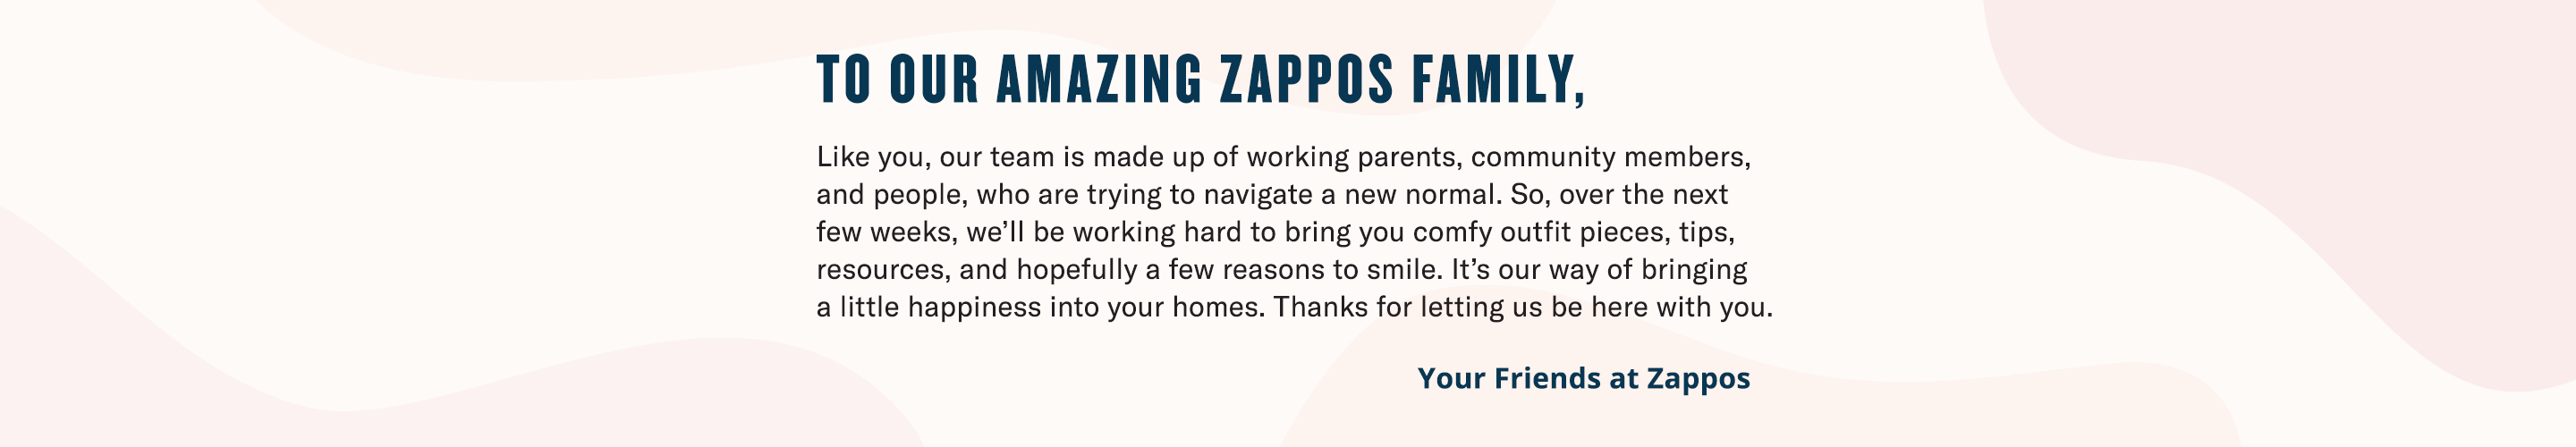 To Our Amazing Zappos Family, Like you, our team is made up of working parents, community members, and people, who are trying to navigate a new normal. So, over the next few weeks, we'll be working hard (from home) to bring you comfy outfit pieces, tips, resources, and hopefully a few reasons to smile. It's our way of bringing a little happiness into your homes. Thanks for letting us be here with you.